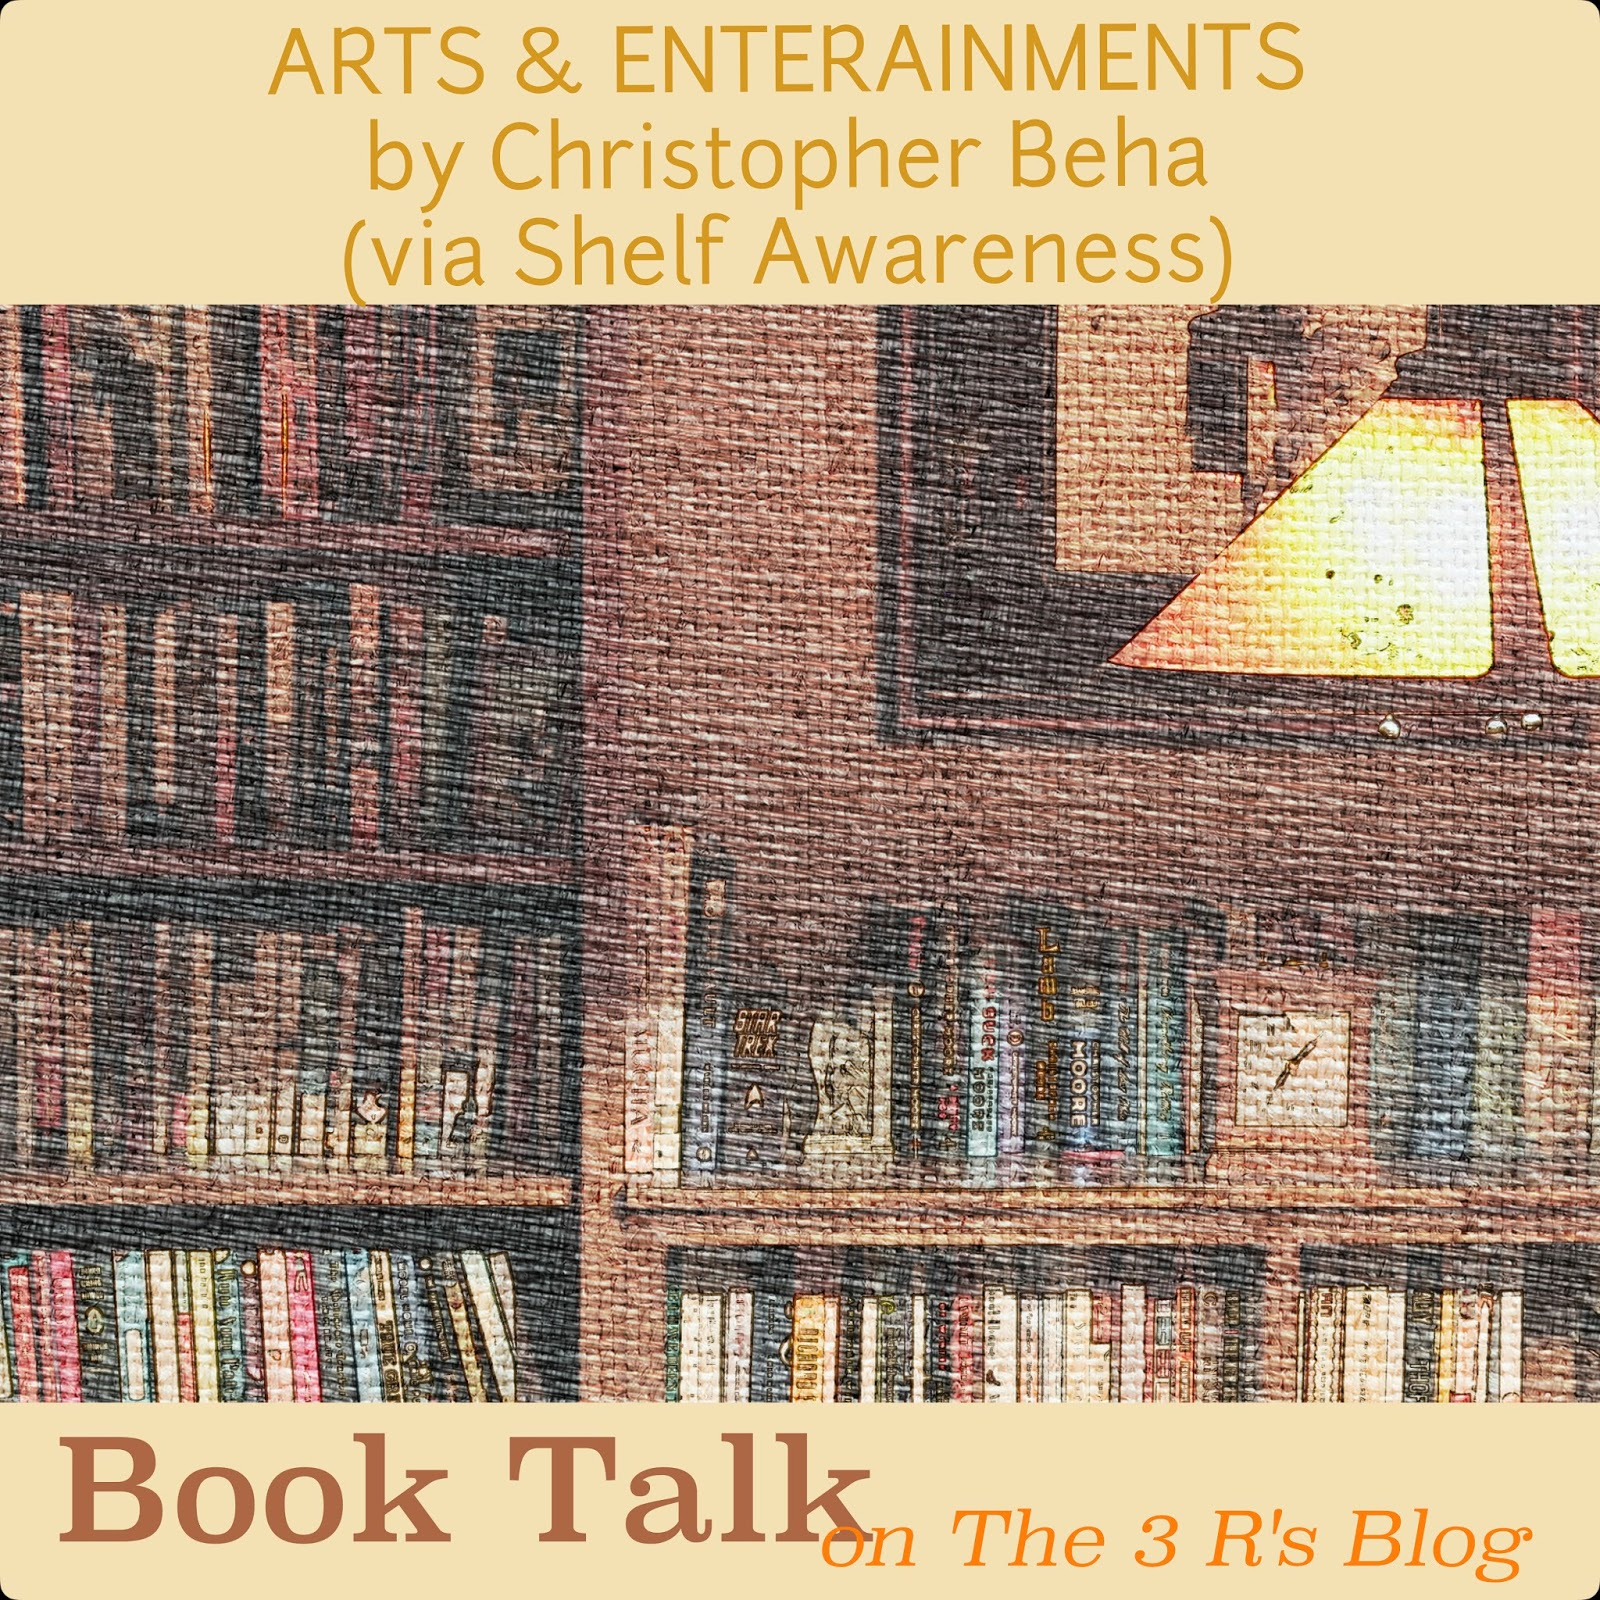 Fiction review: ARTS & ENTERAINMENTS by Christopher Beha on The 3 Rs Blog